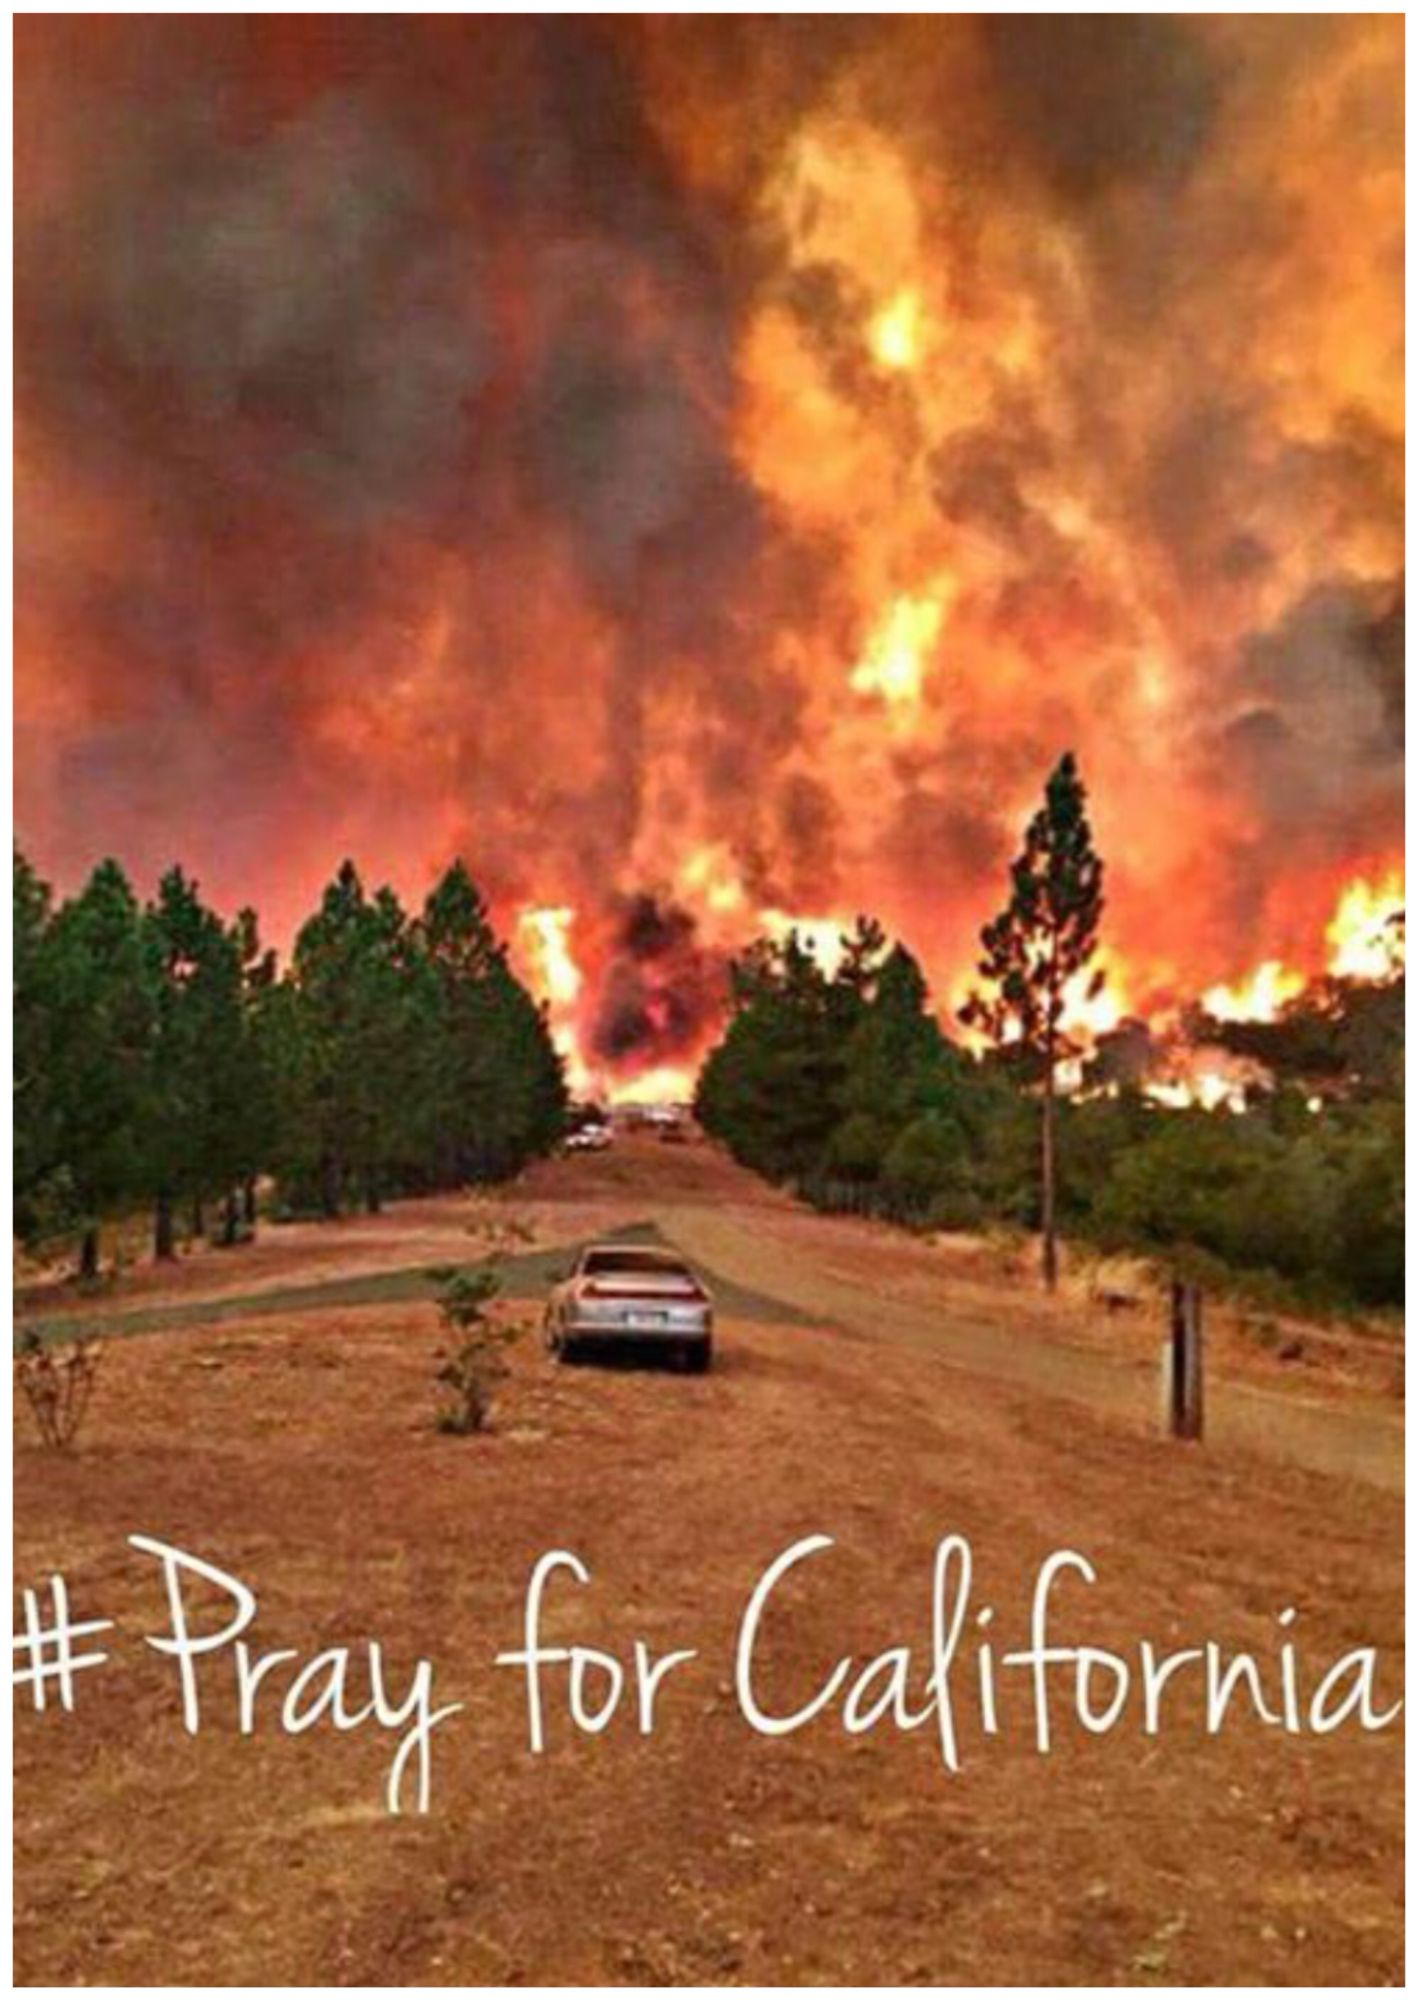 Prayer Warriors!!!! Pray for those displaced by this fire